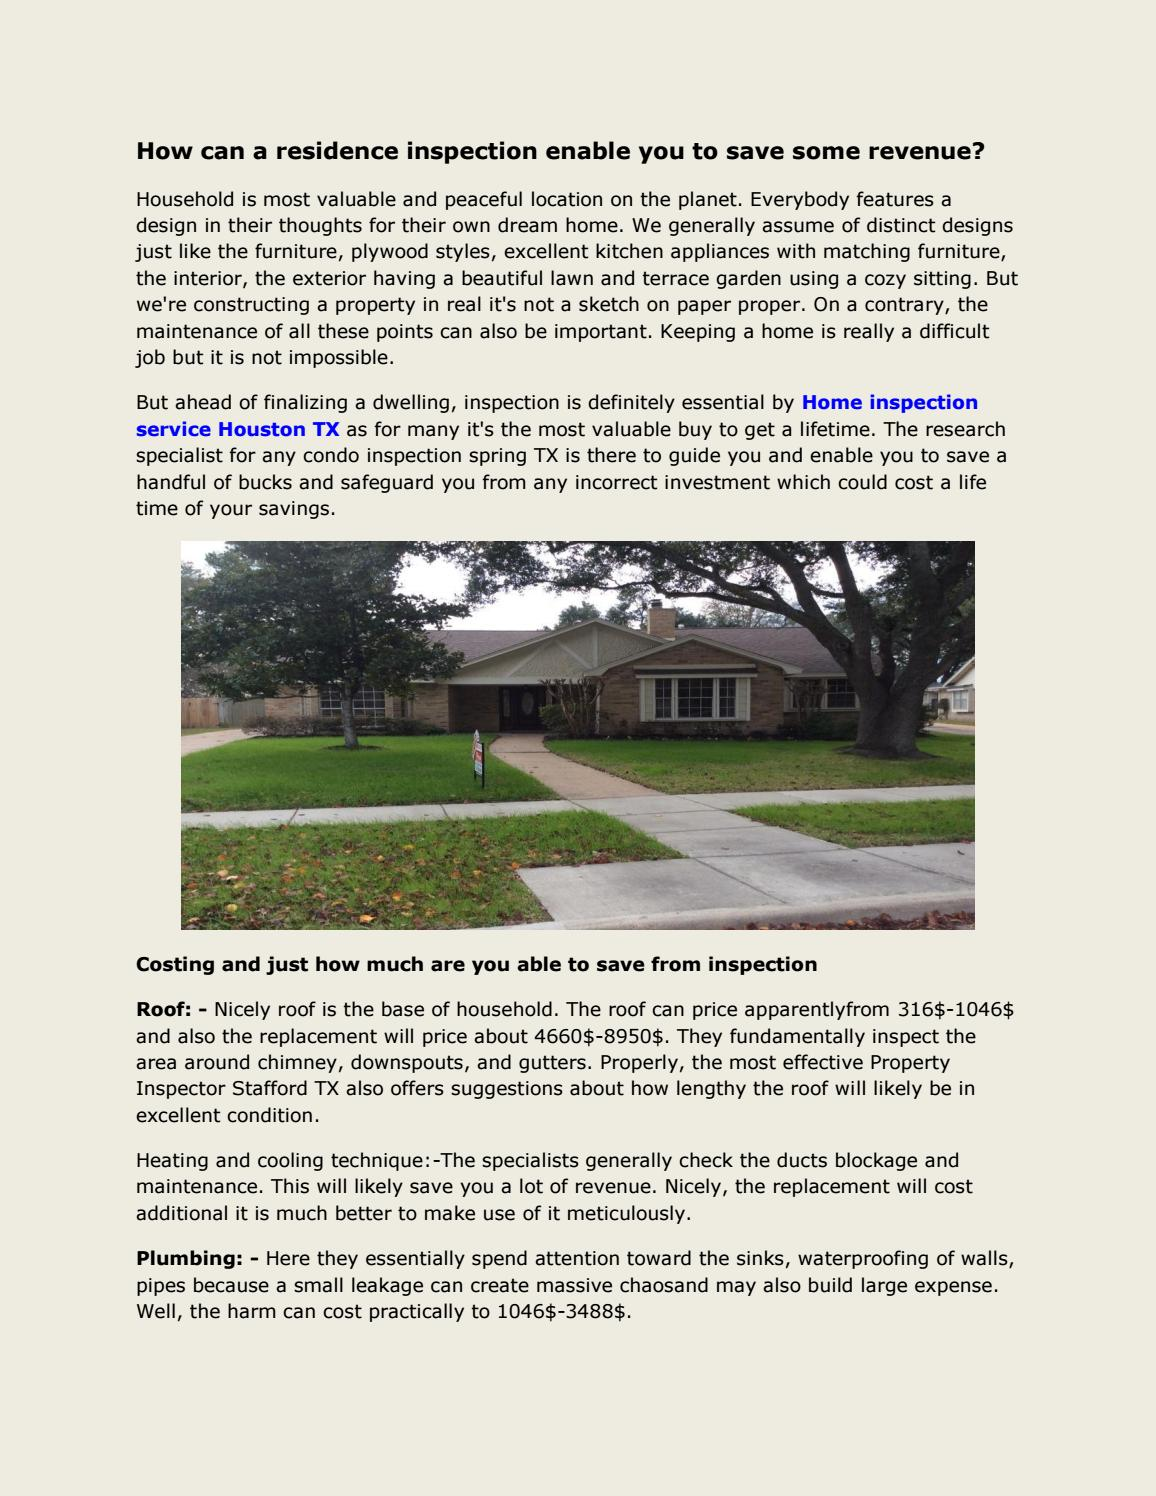 Condo inspection the woodlands tx by Home inspection ...